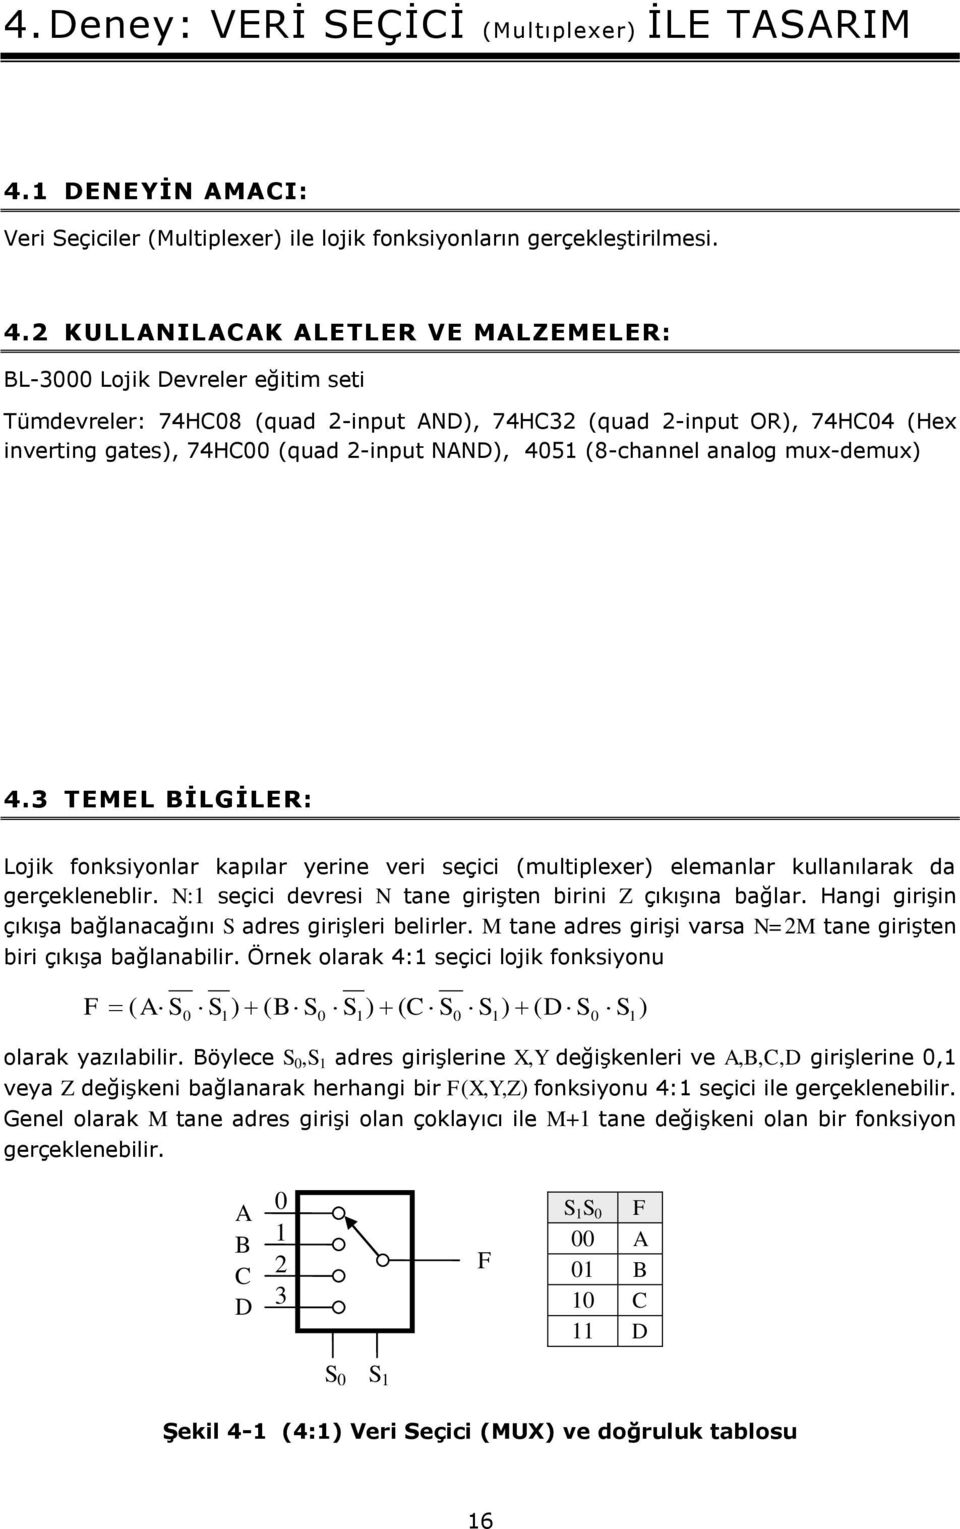 2 KULLANILACAK ALETLER VE MALZEMELER: BL-3 Lojik Devreler eğitim seti Tümdevreler: 74HC8 (quad 2-input AND), 74HC32 (quad 2-input OR), 74HC4 (Hex inverting gates), 74HC (quad 2-input NAND), 45